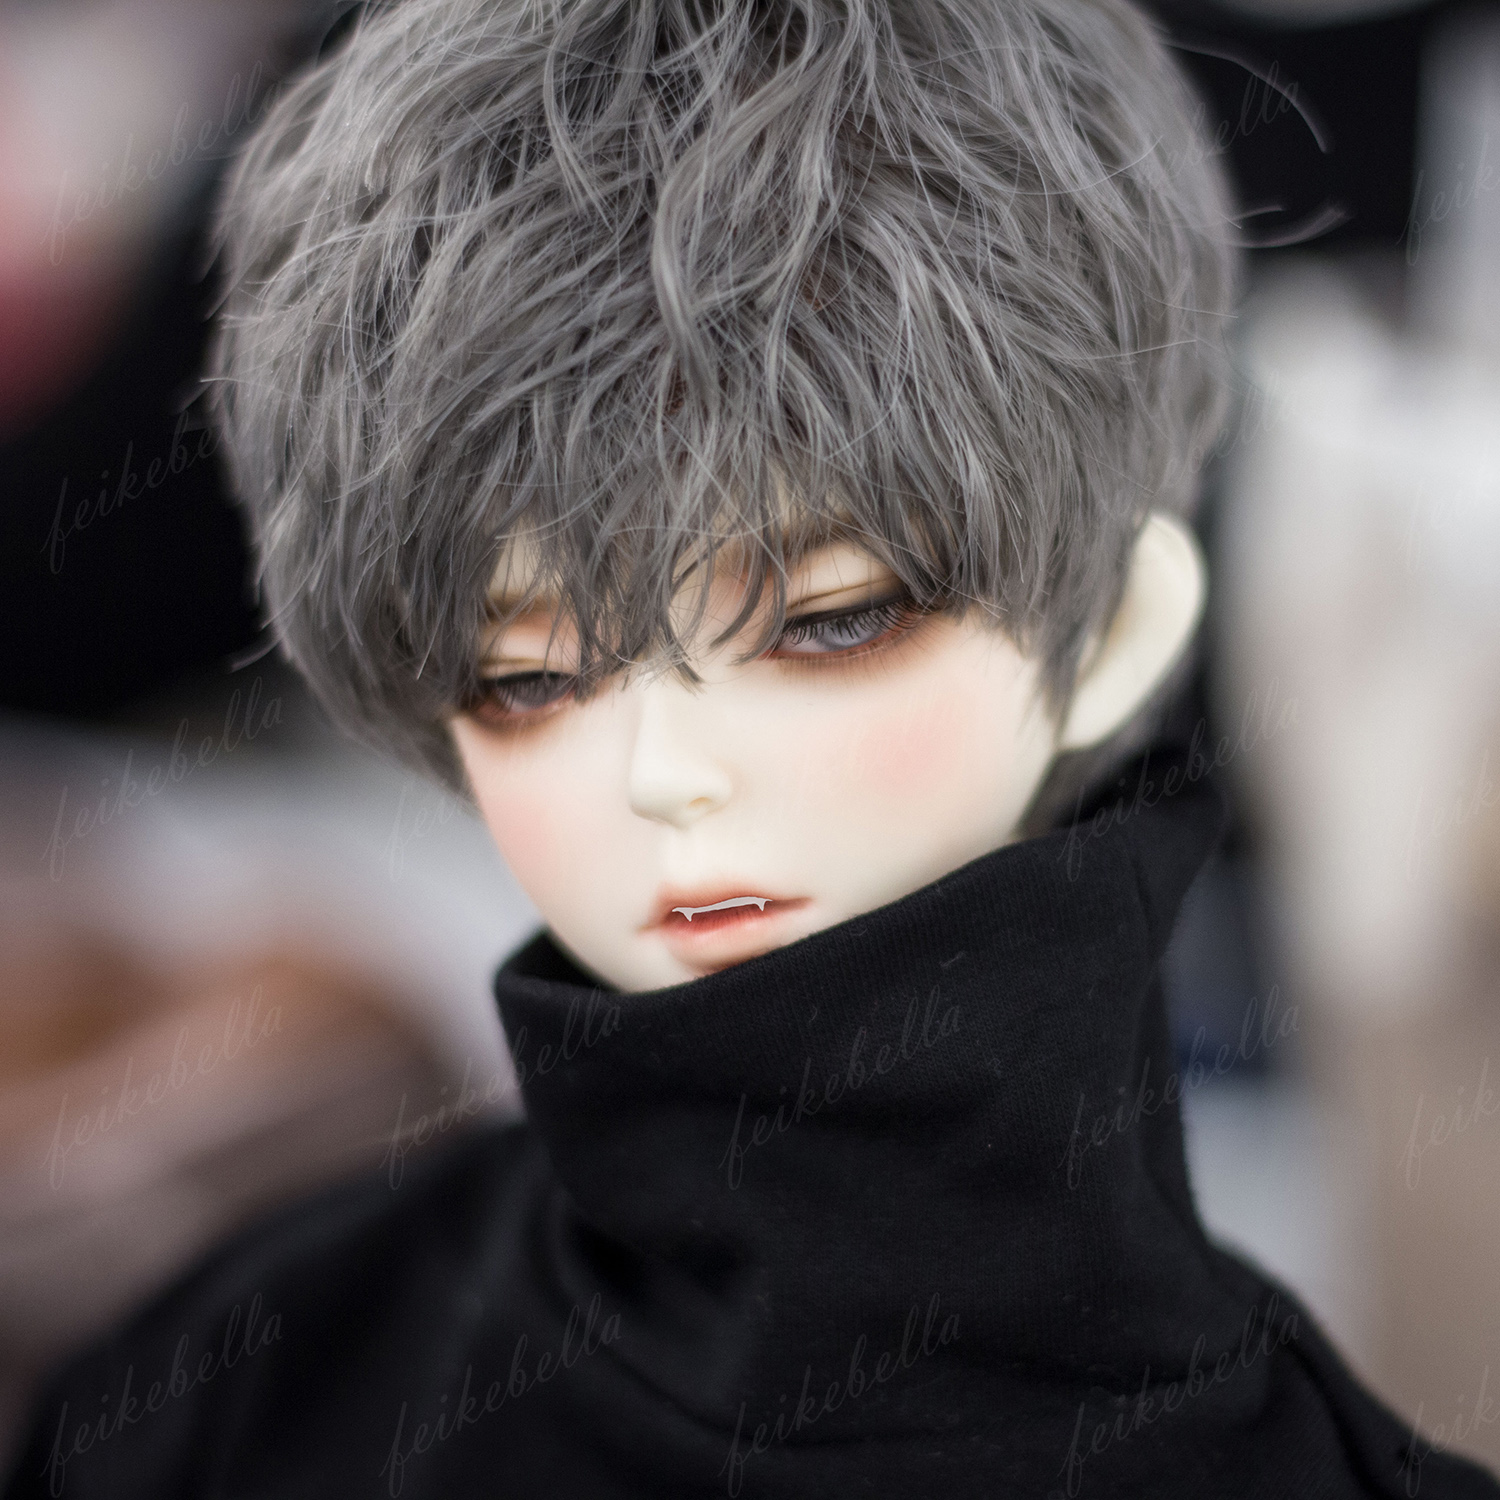 1//3 bjd doll  only head on the my eaby shop  without face make up